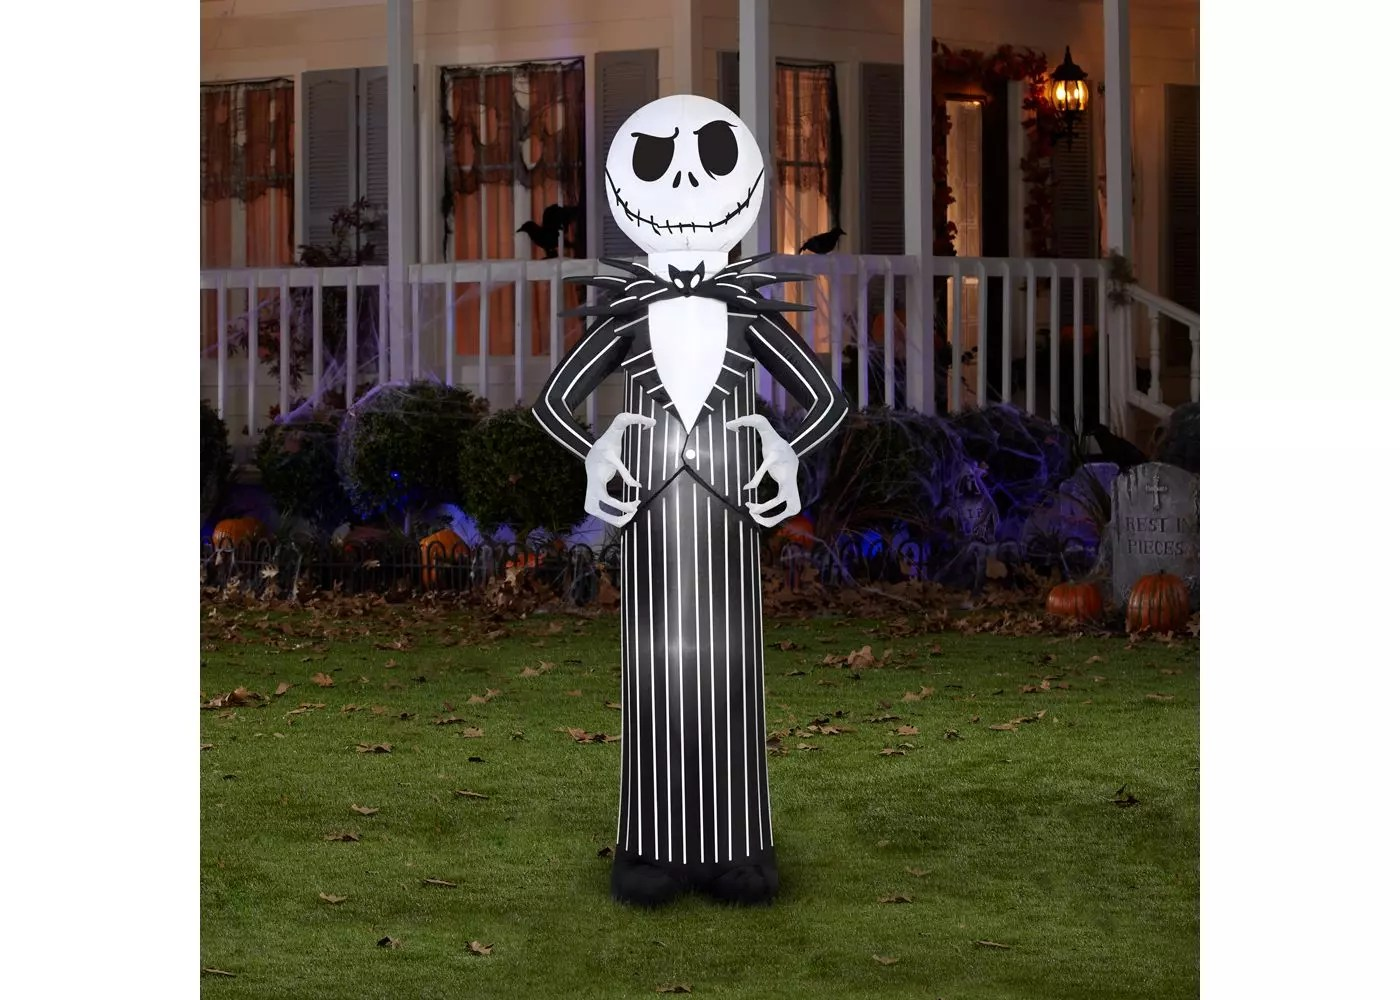 The Pumpkin King awaits his rightful place in your Halloween display!